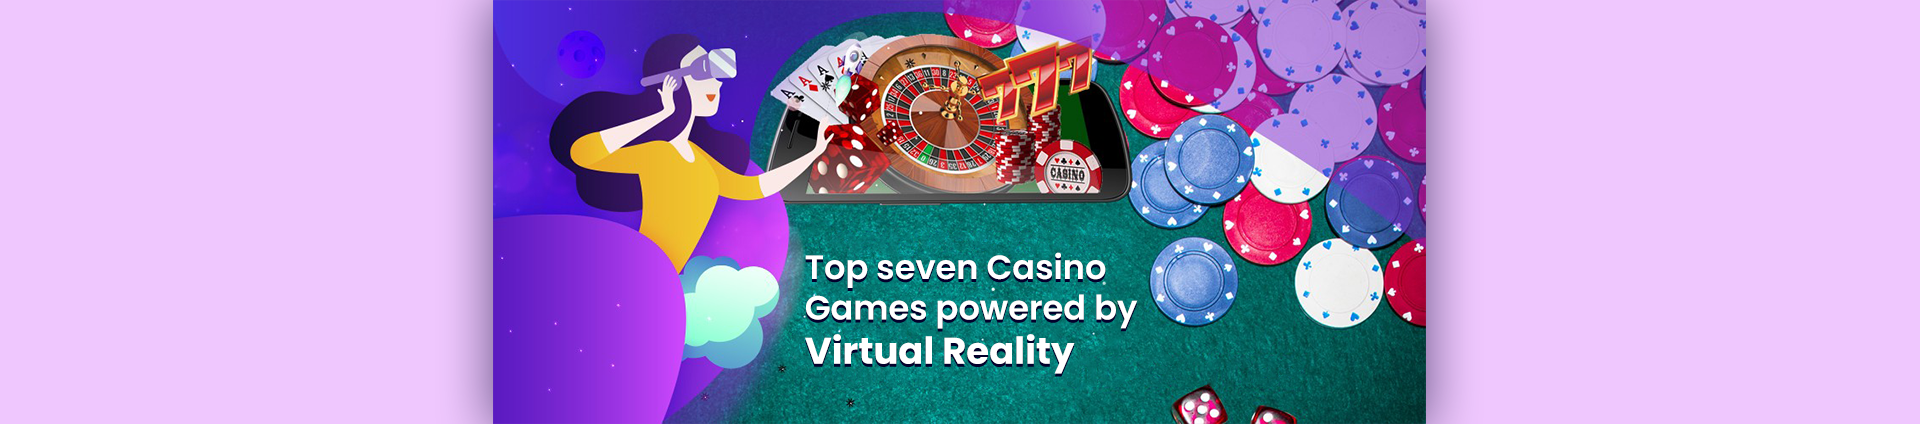 Casino Games Powered by Virtual Reality